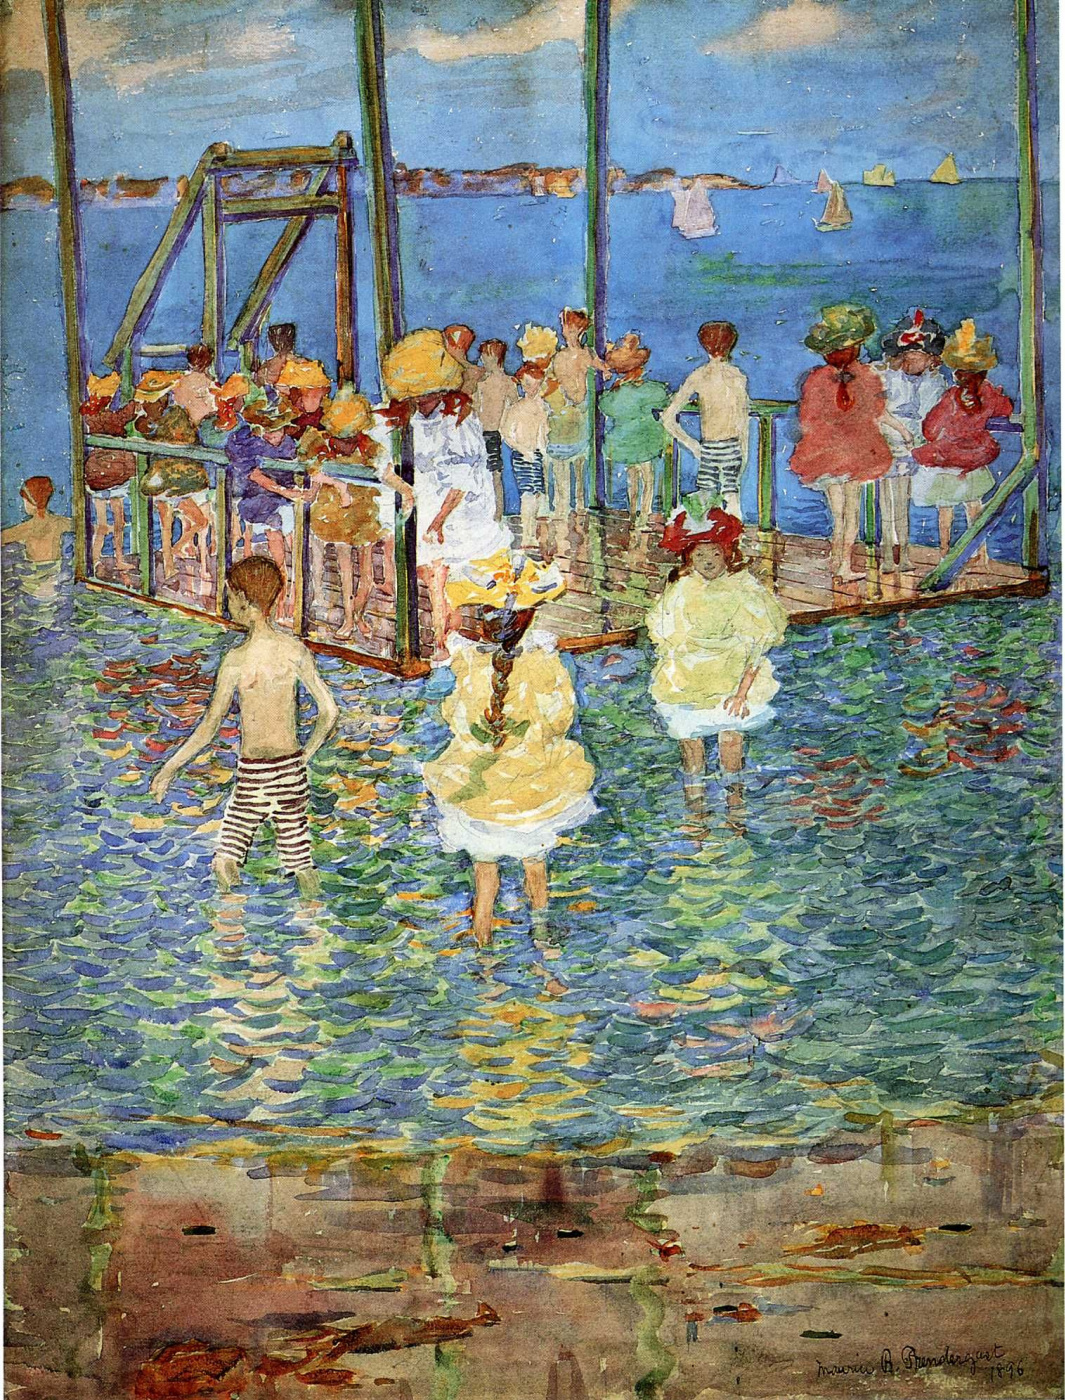 Maurice Braziel Prendergast. Children on a raft